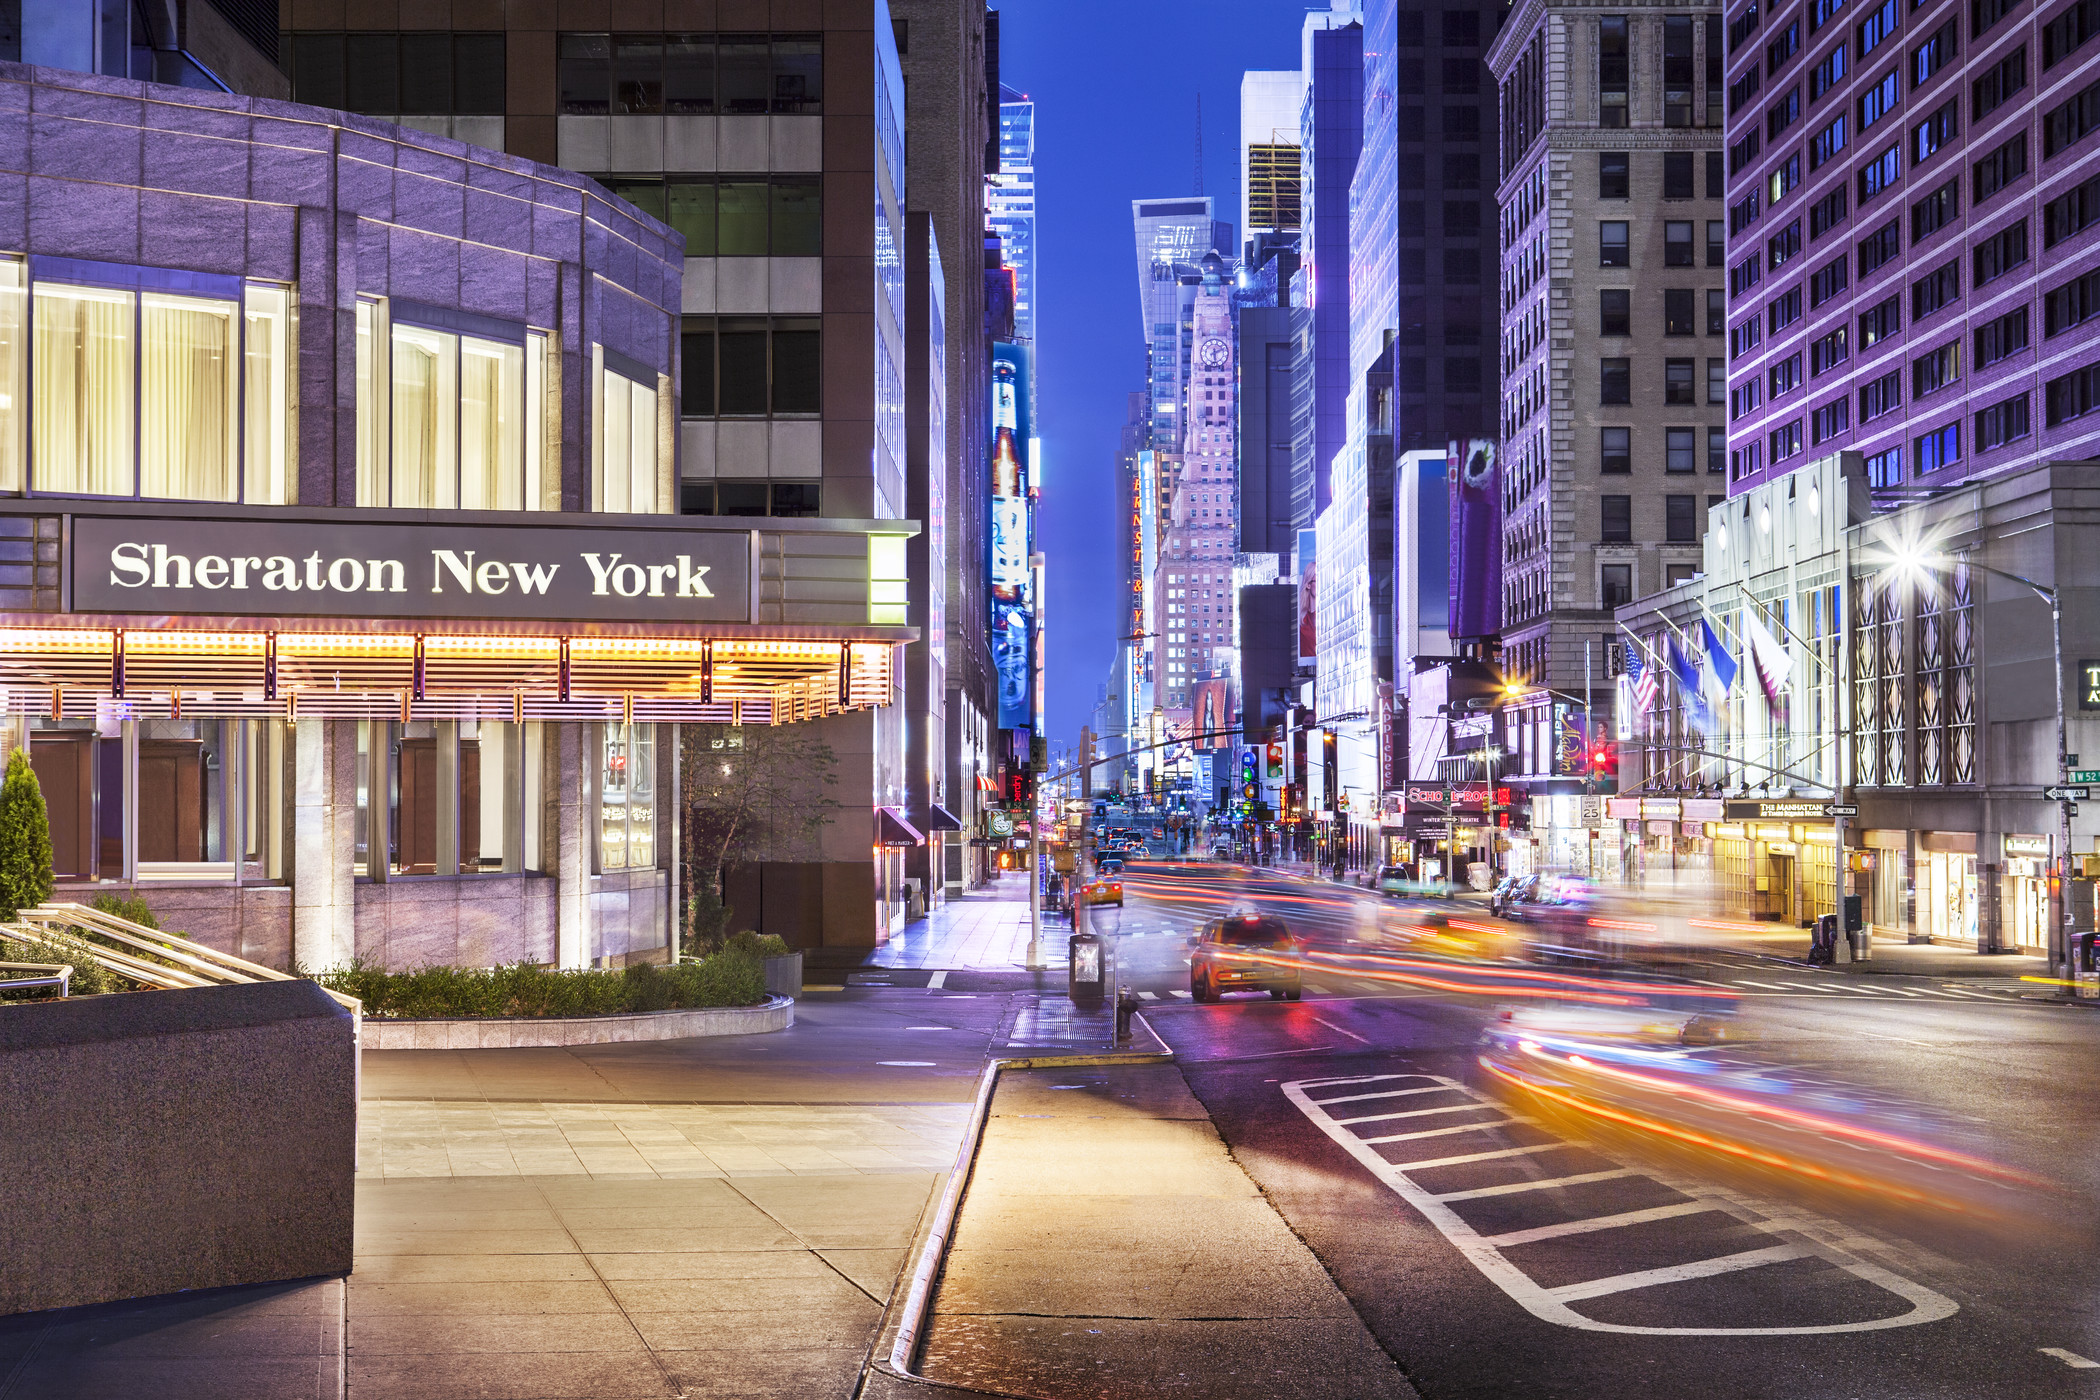 New York Hotel Hotels Store Coupon Code